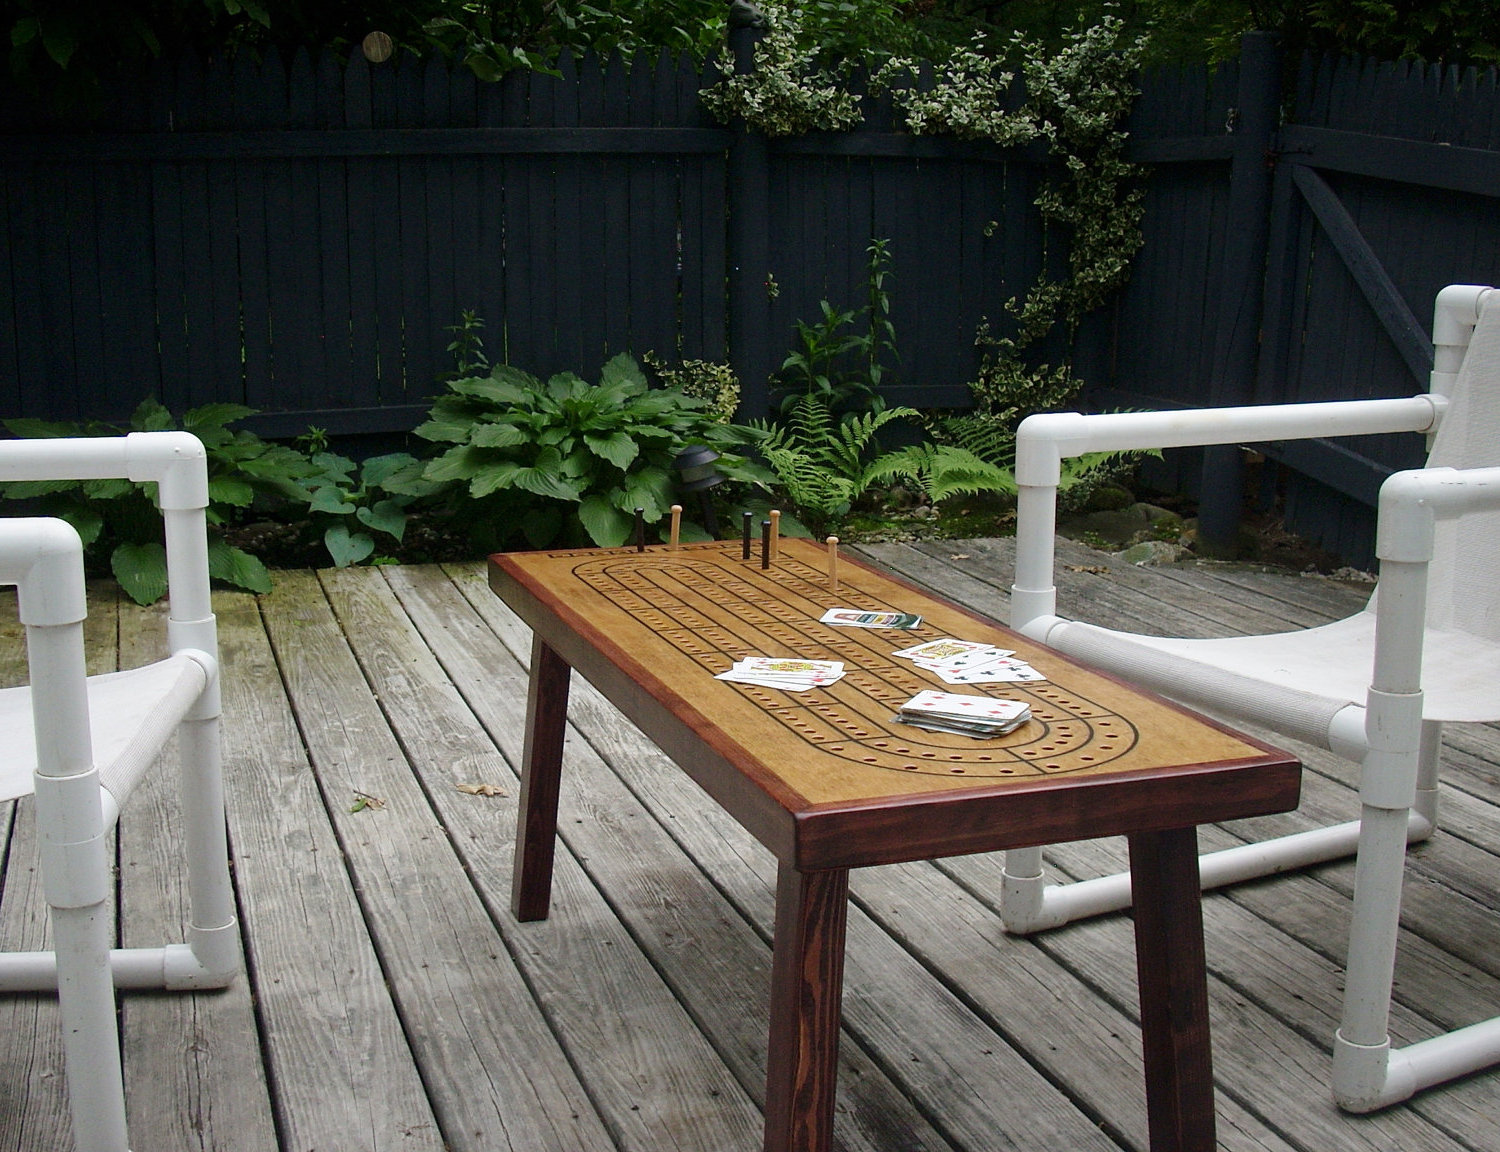 cribbage board coffee table for outdoor area